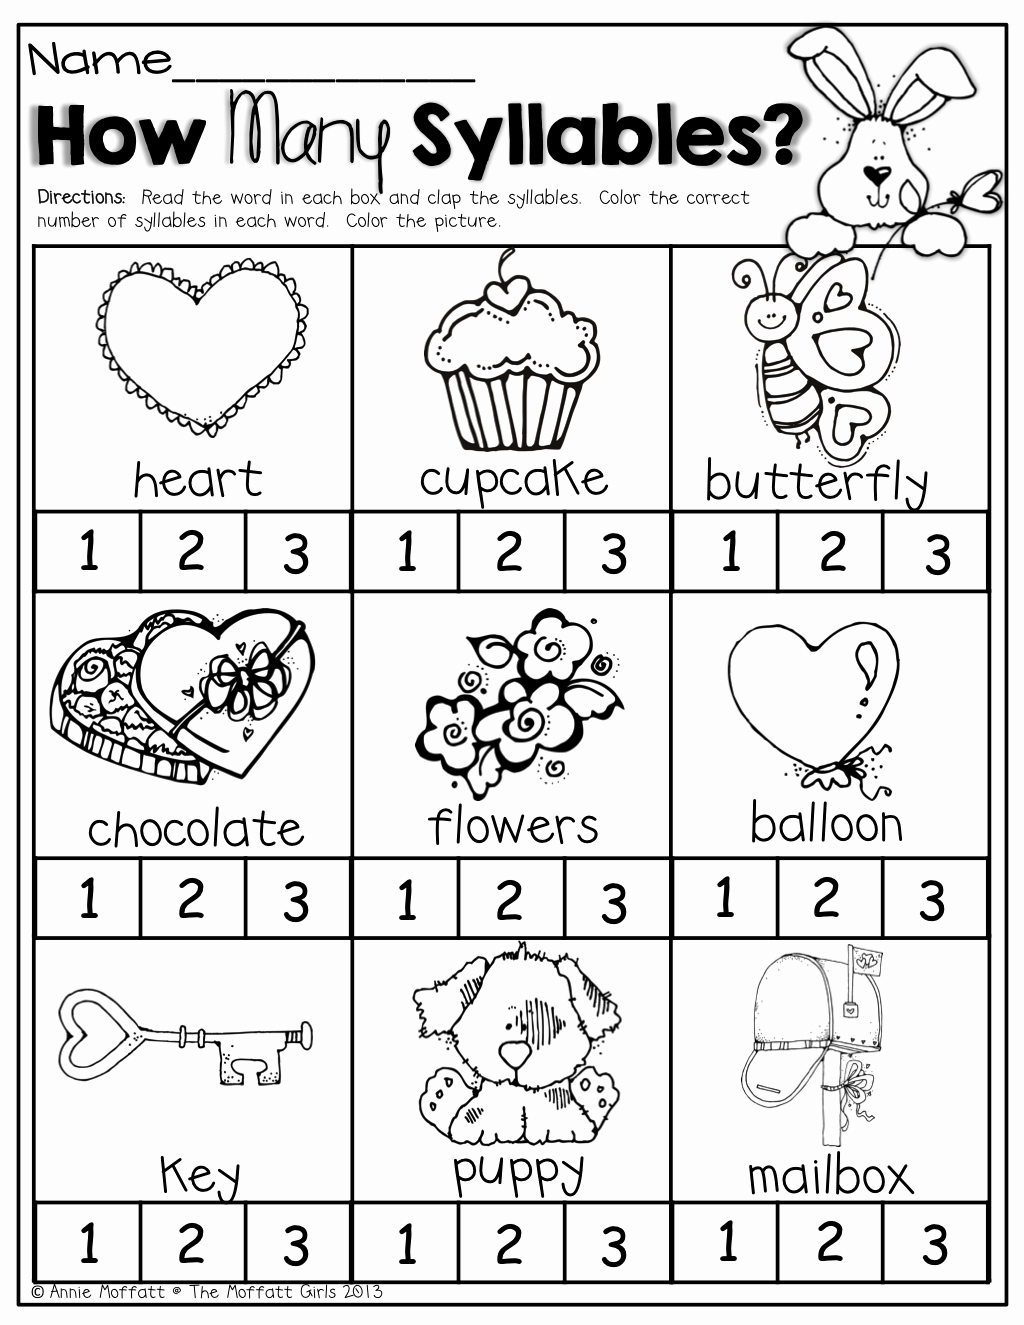 50 Syllables Worksheet For Kindergarten